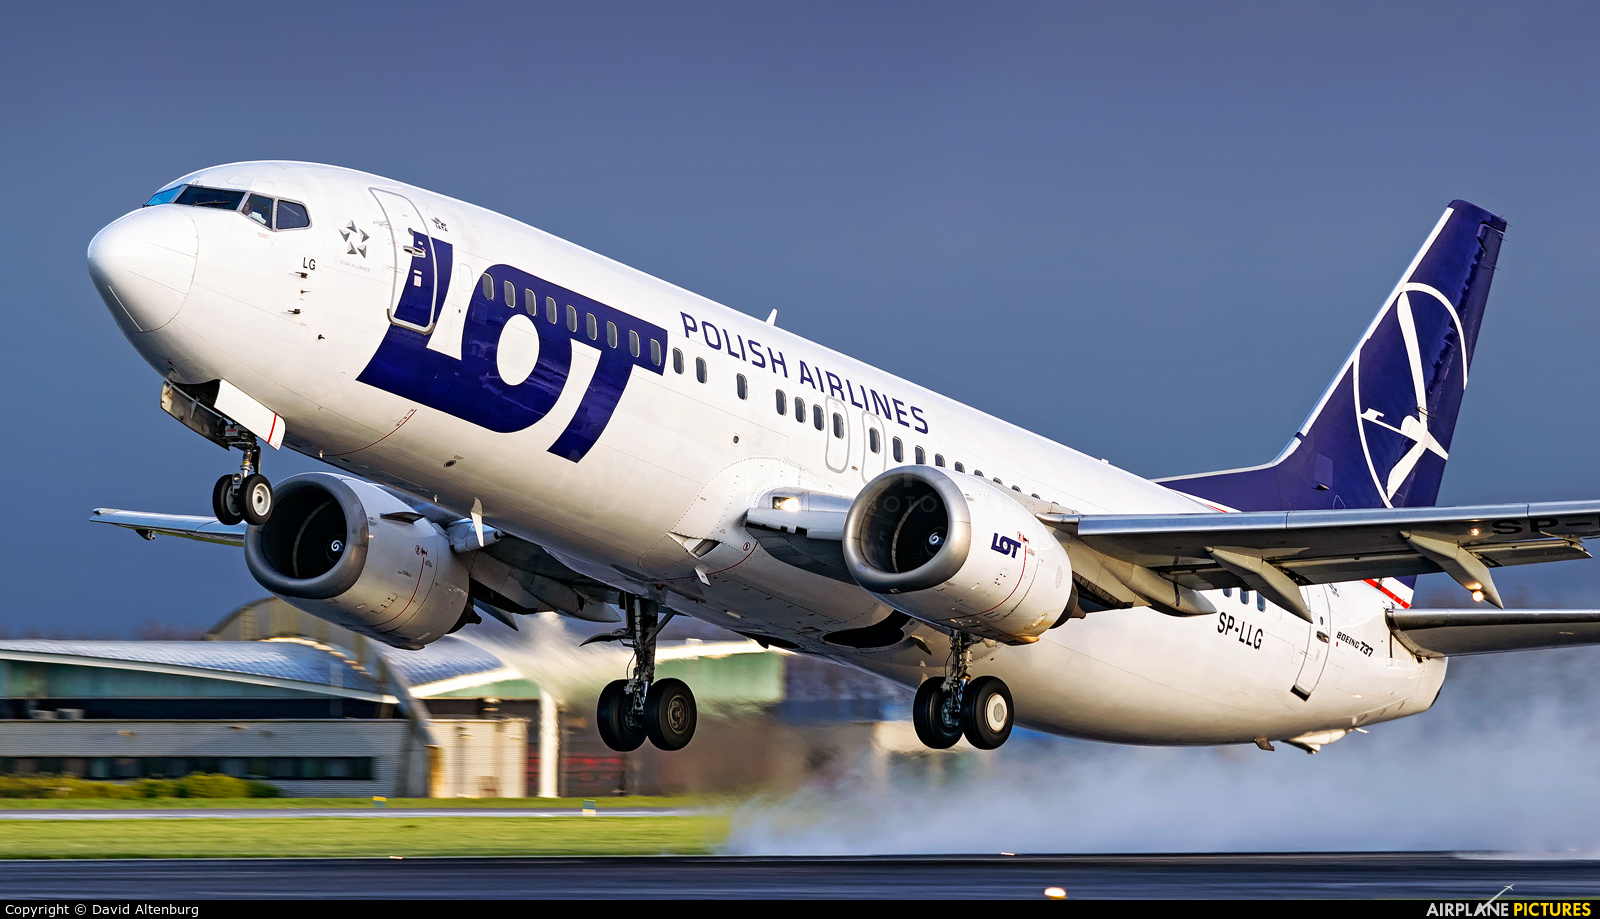 LOT - Polish Airlines SP-LLG aircraft at Amsterdam - Schiphol